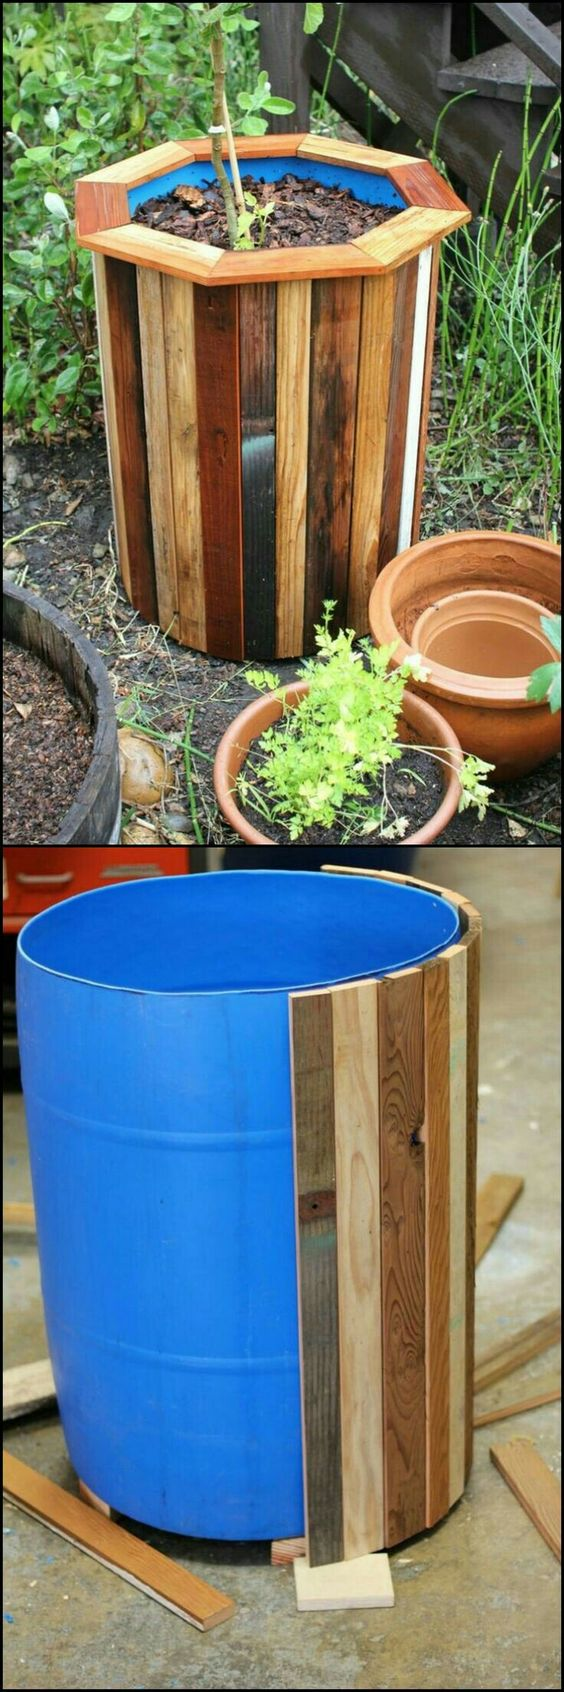 Stylish and Budget Friendly DIY Planter Box Using Plastic Barrels Covered in Wood.